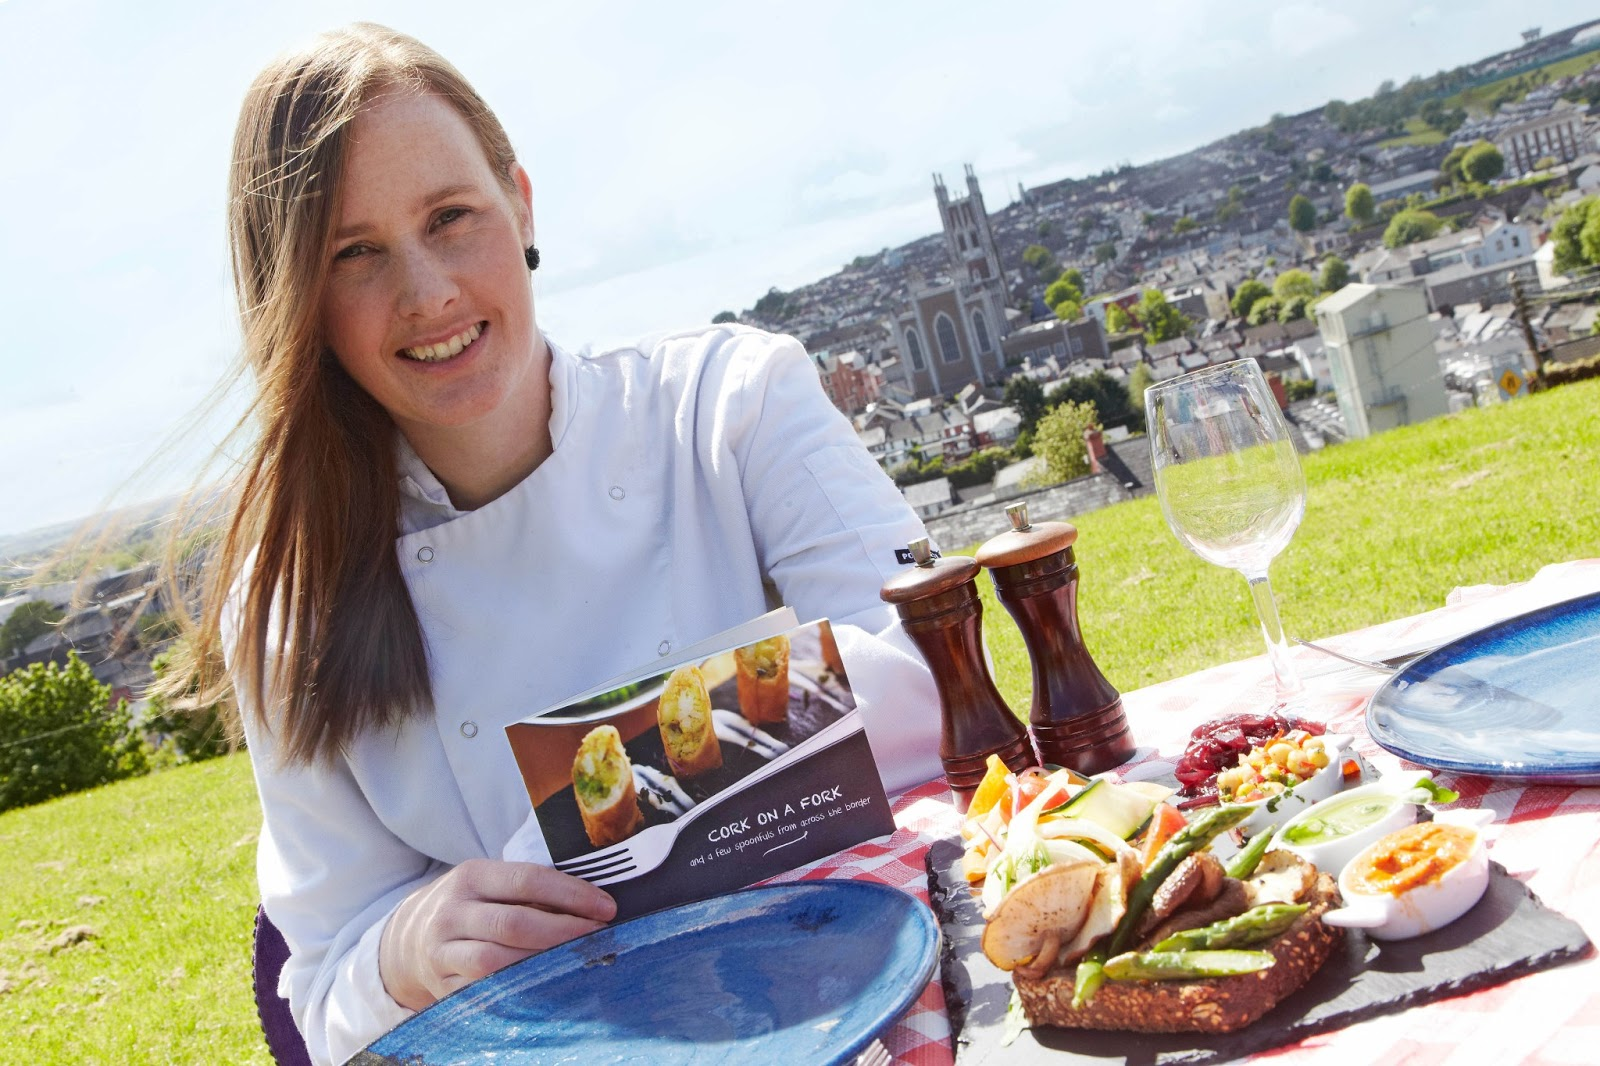 RESTAURANTS AND FOOD: Kate Lawlor's